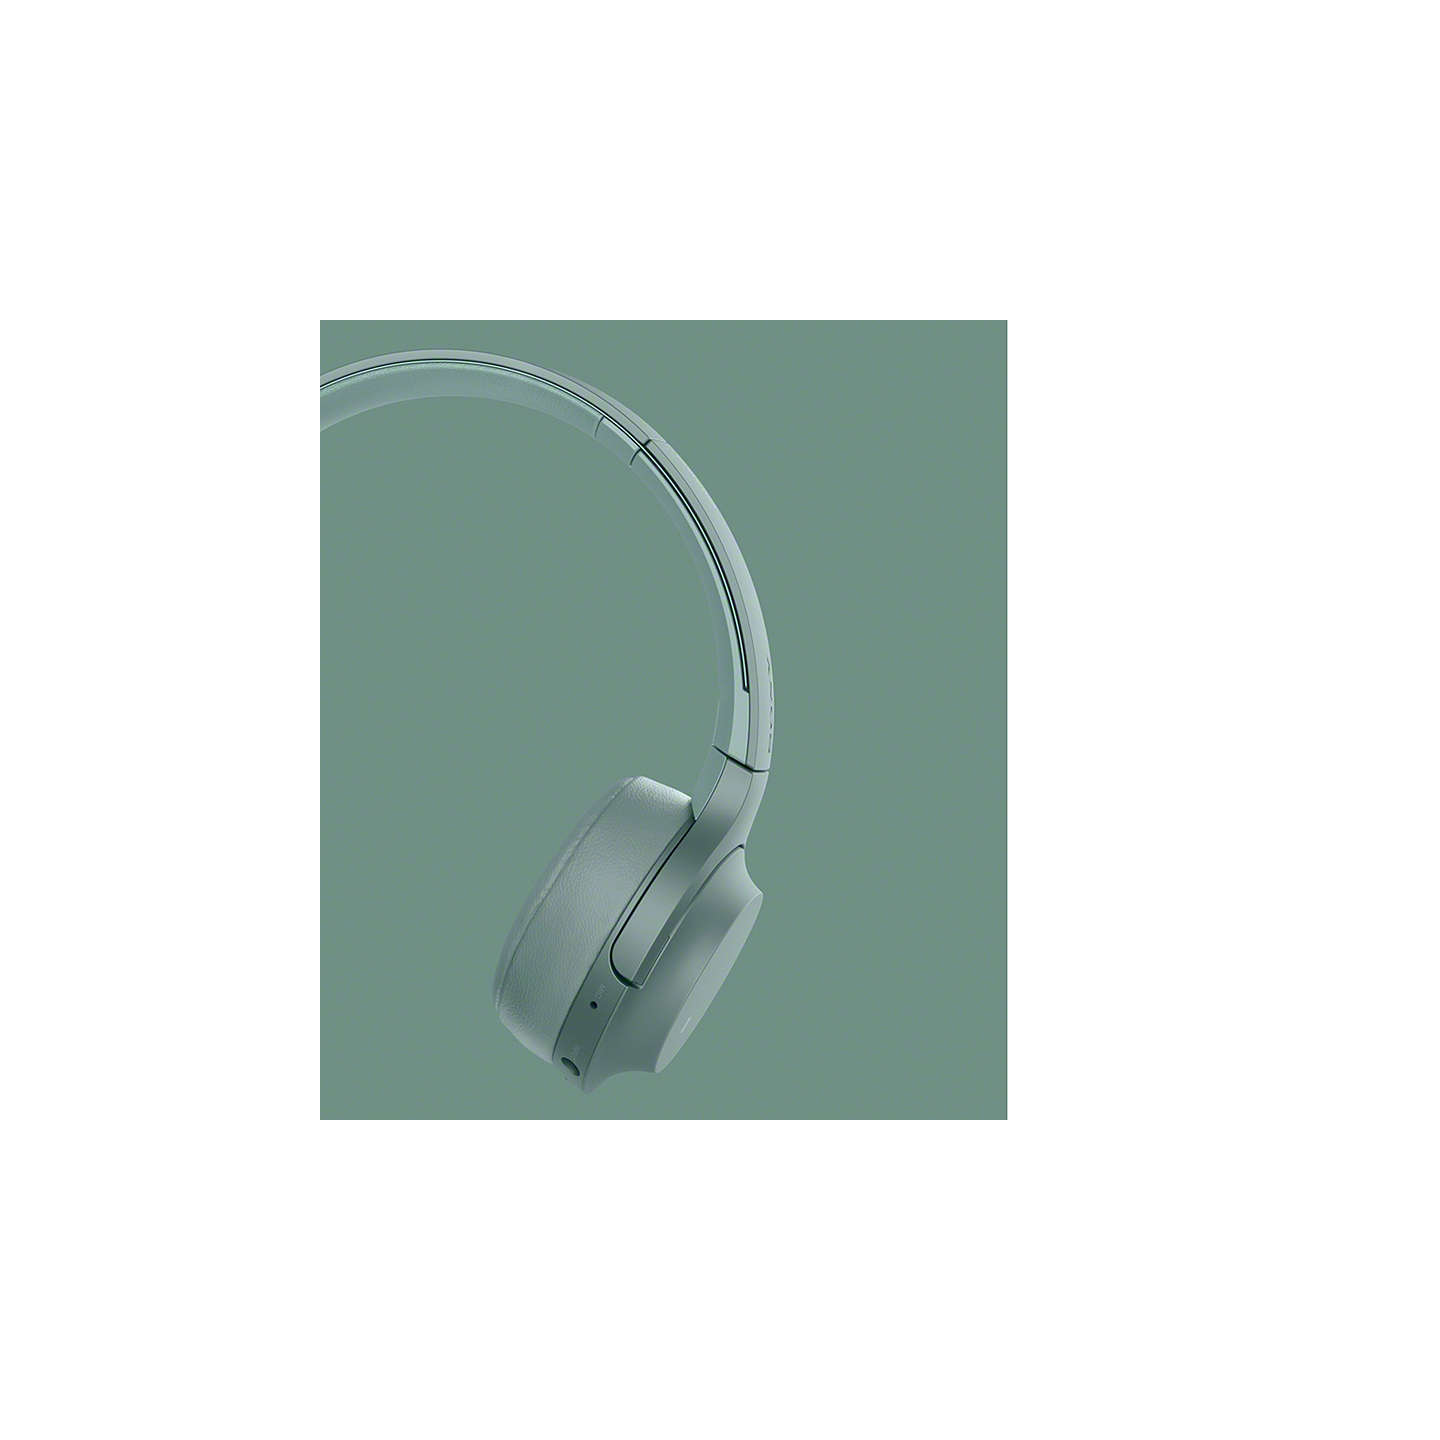 BuySony WH-H800 h.ear on 2 Mini Bluetooth NFC Wireless On-Ear Headphones, Green Online at johnlewis.com